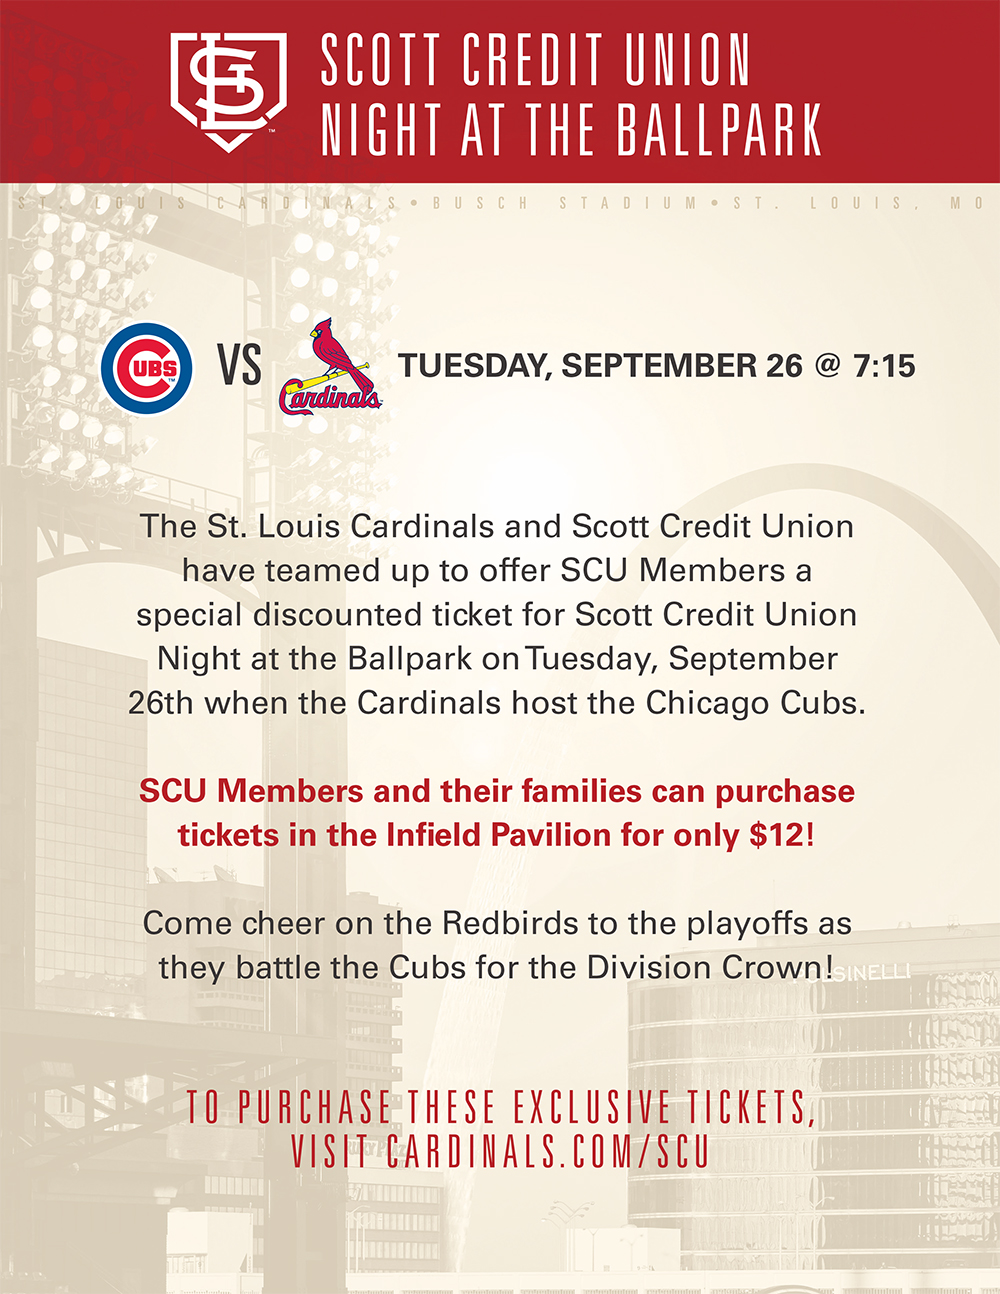 Discounted Cardinals Tickets for Scott Credit Union Members